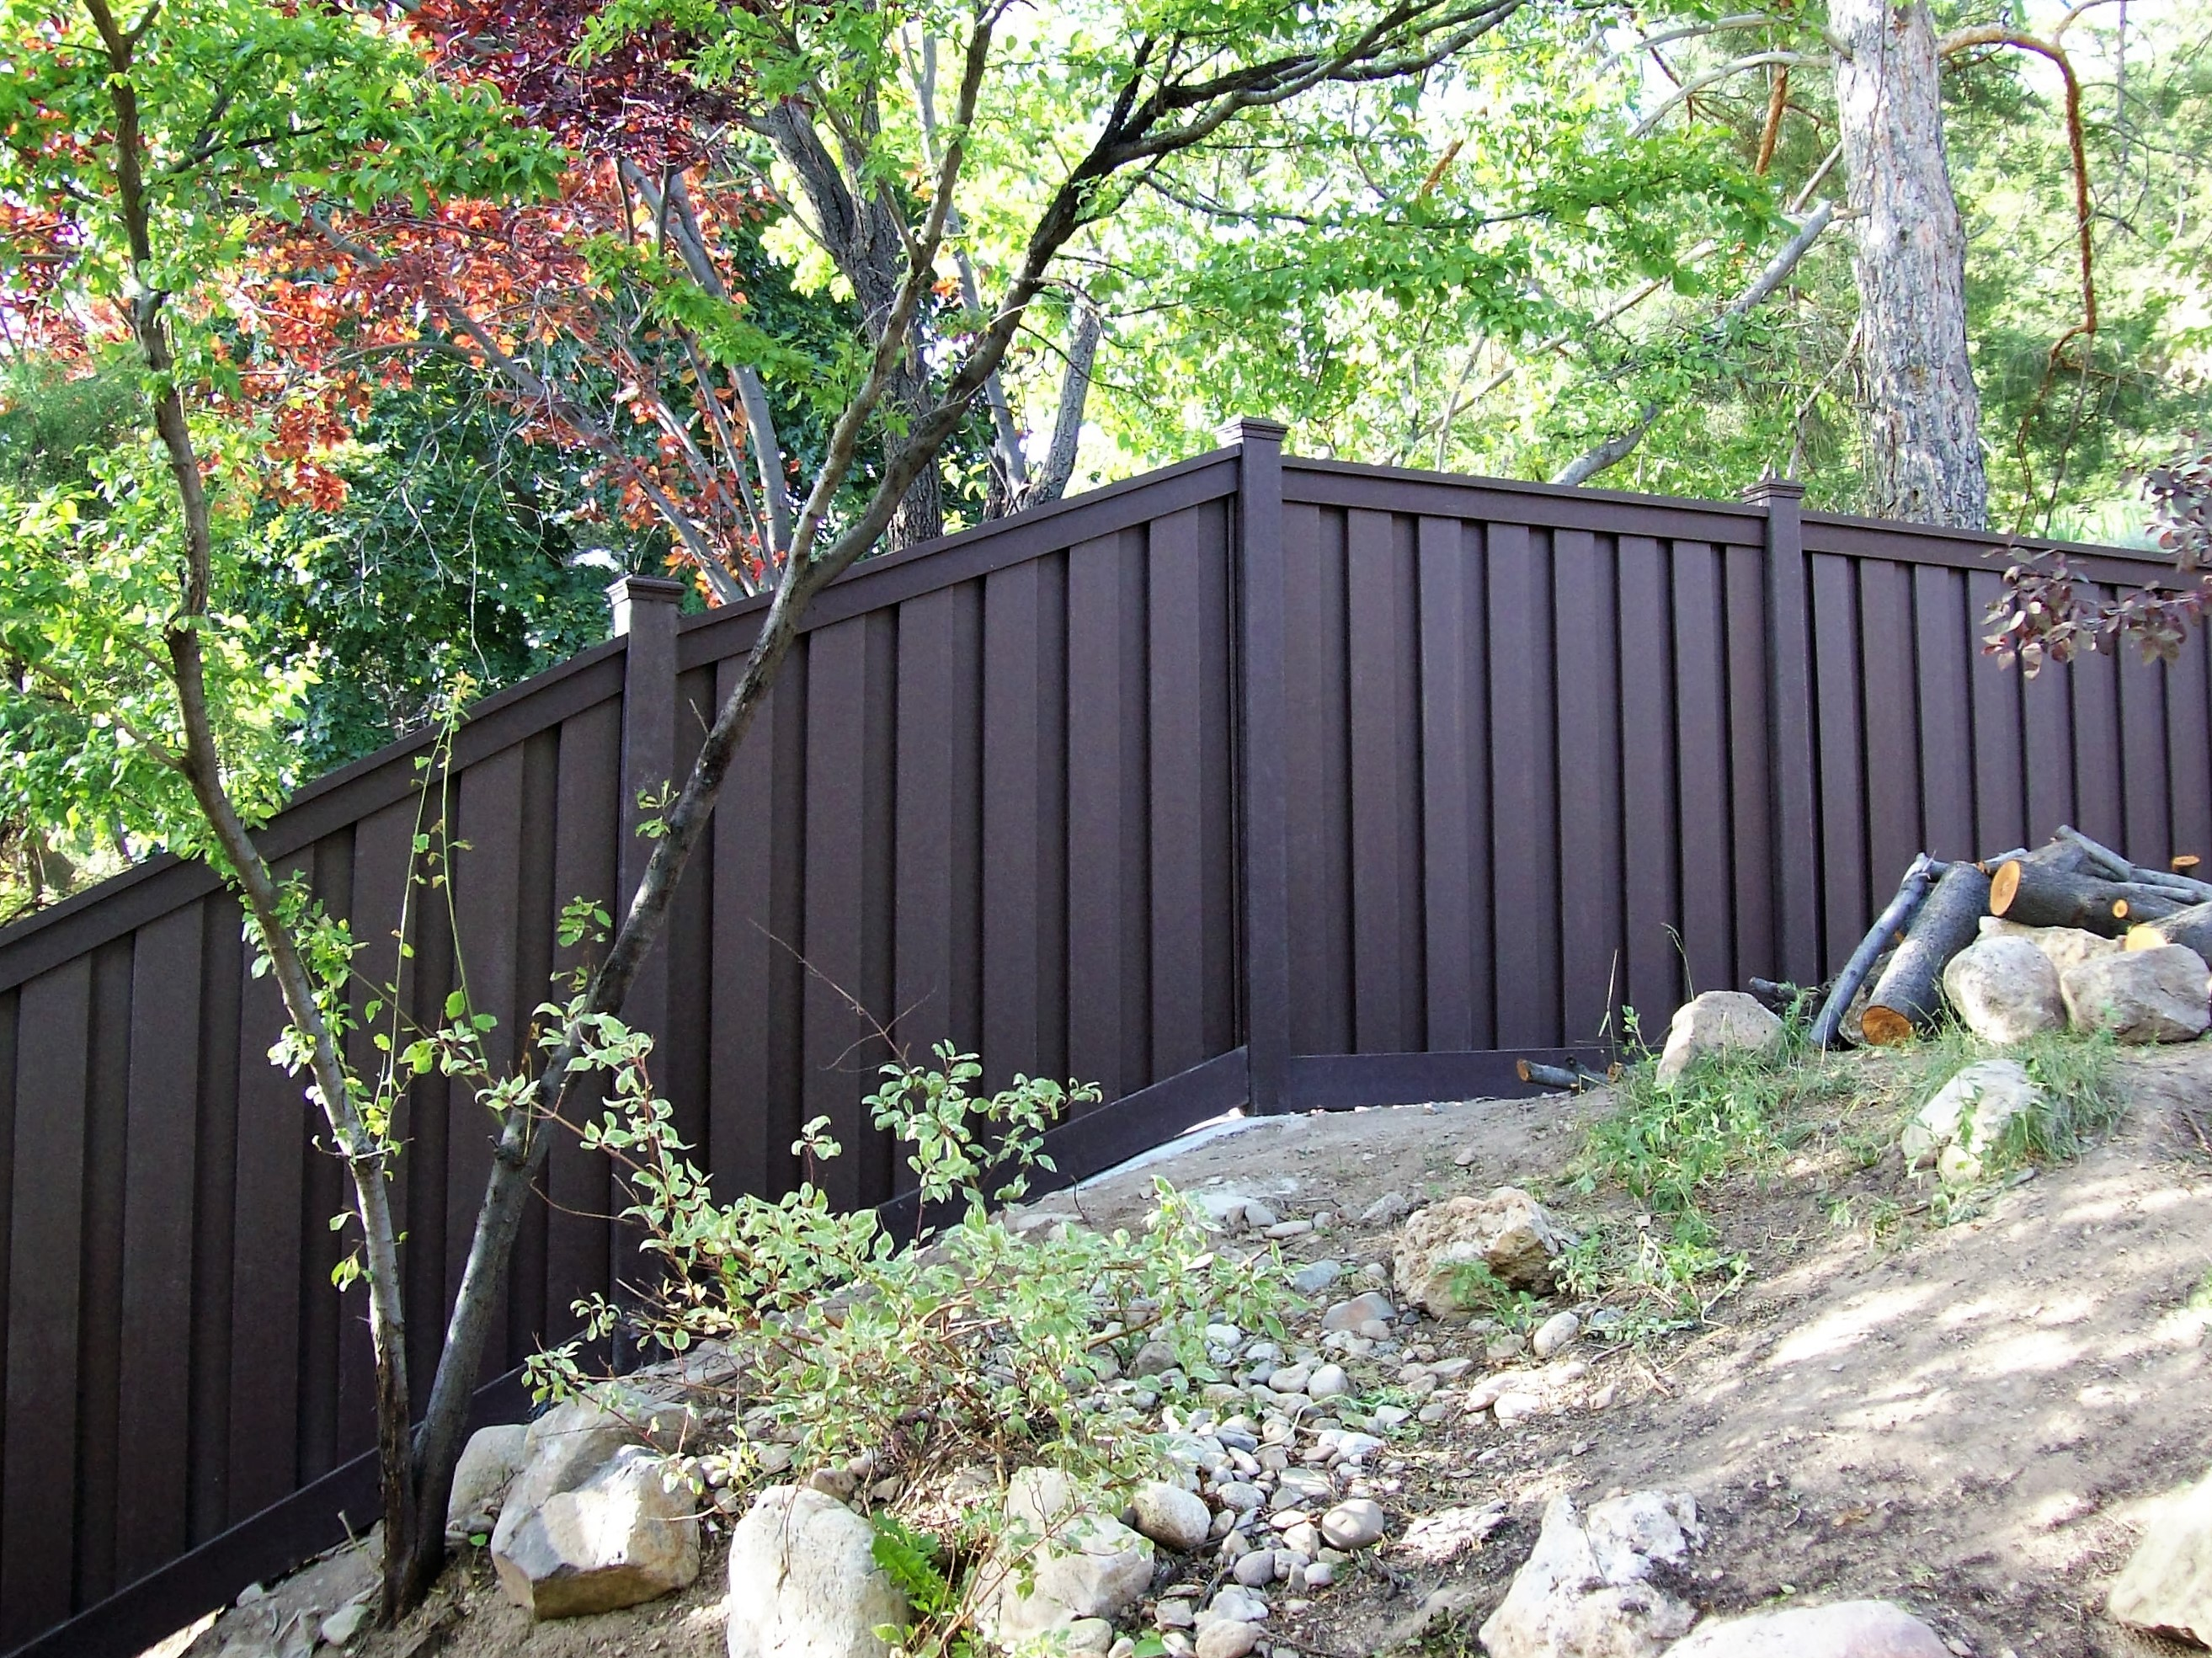 Trex fencing on a steep slope